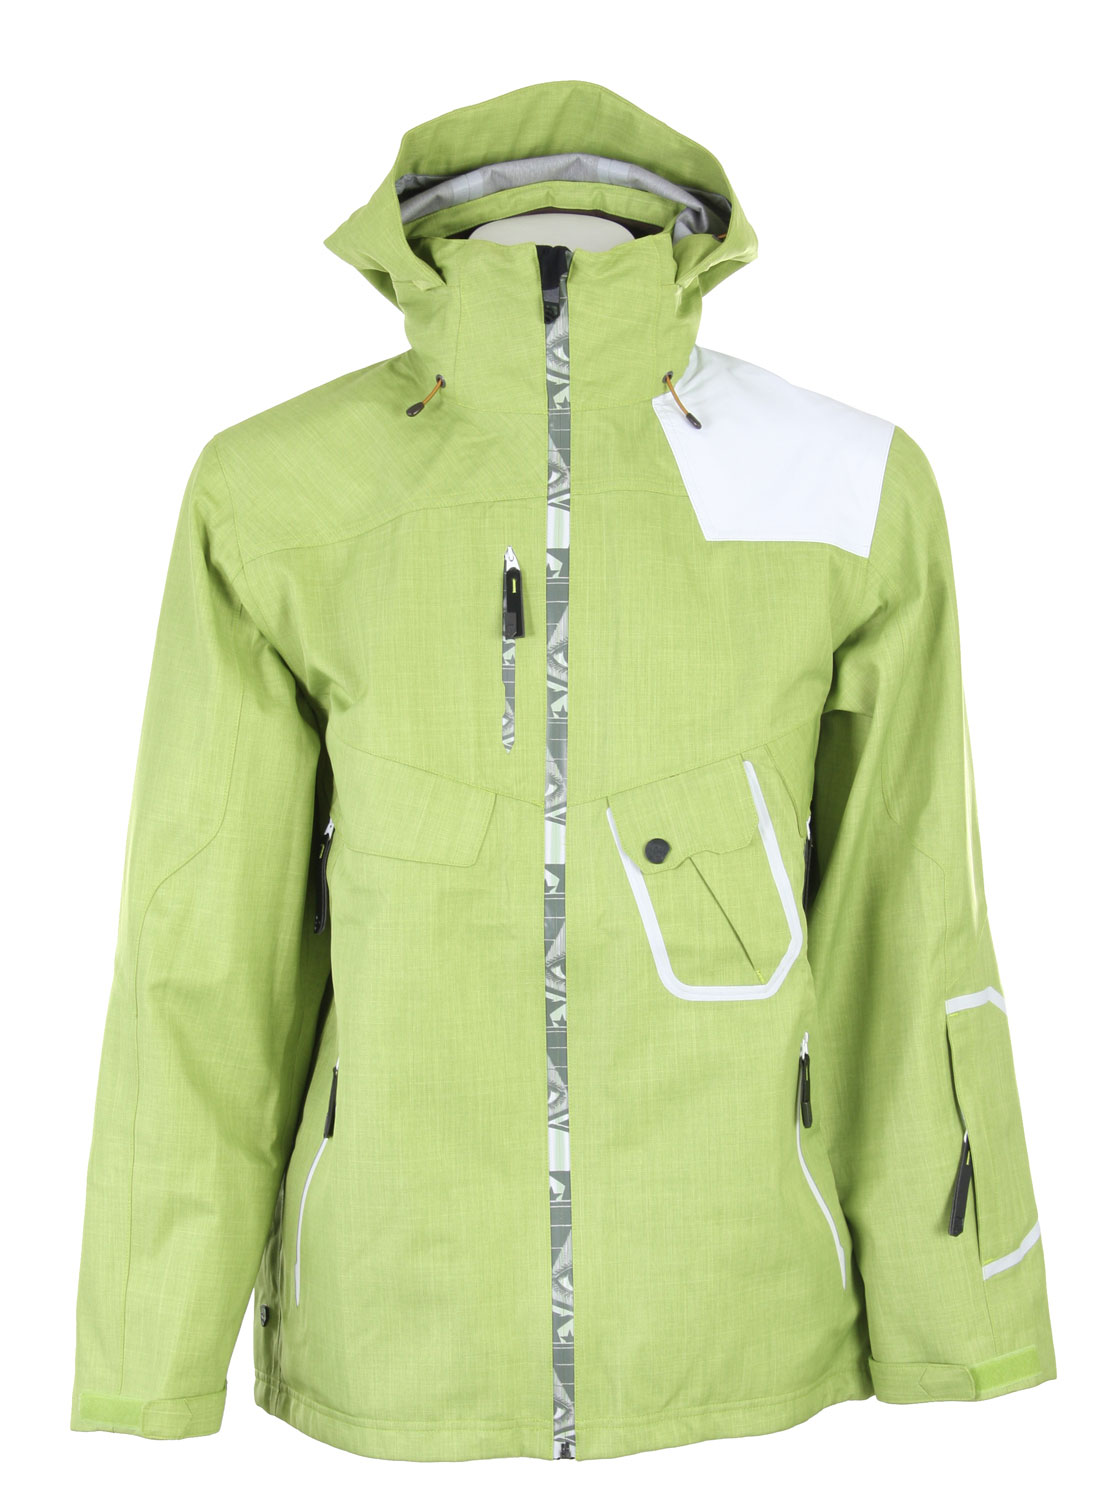 Ski A technical 3-layers climaPRO storm jacket, which features zip-in connection with the sideways pants.Key Features of the Salomon Sideways 3L Jacket: 3L 100% Taped Powder collar Recco - $259.95